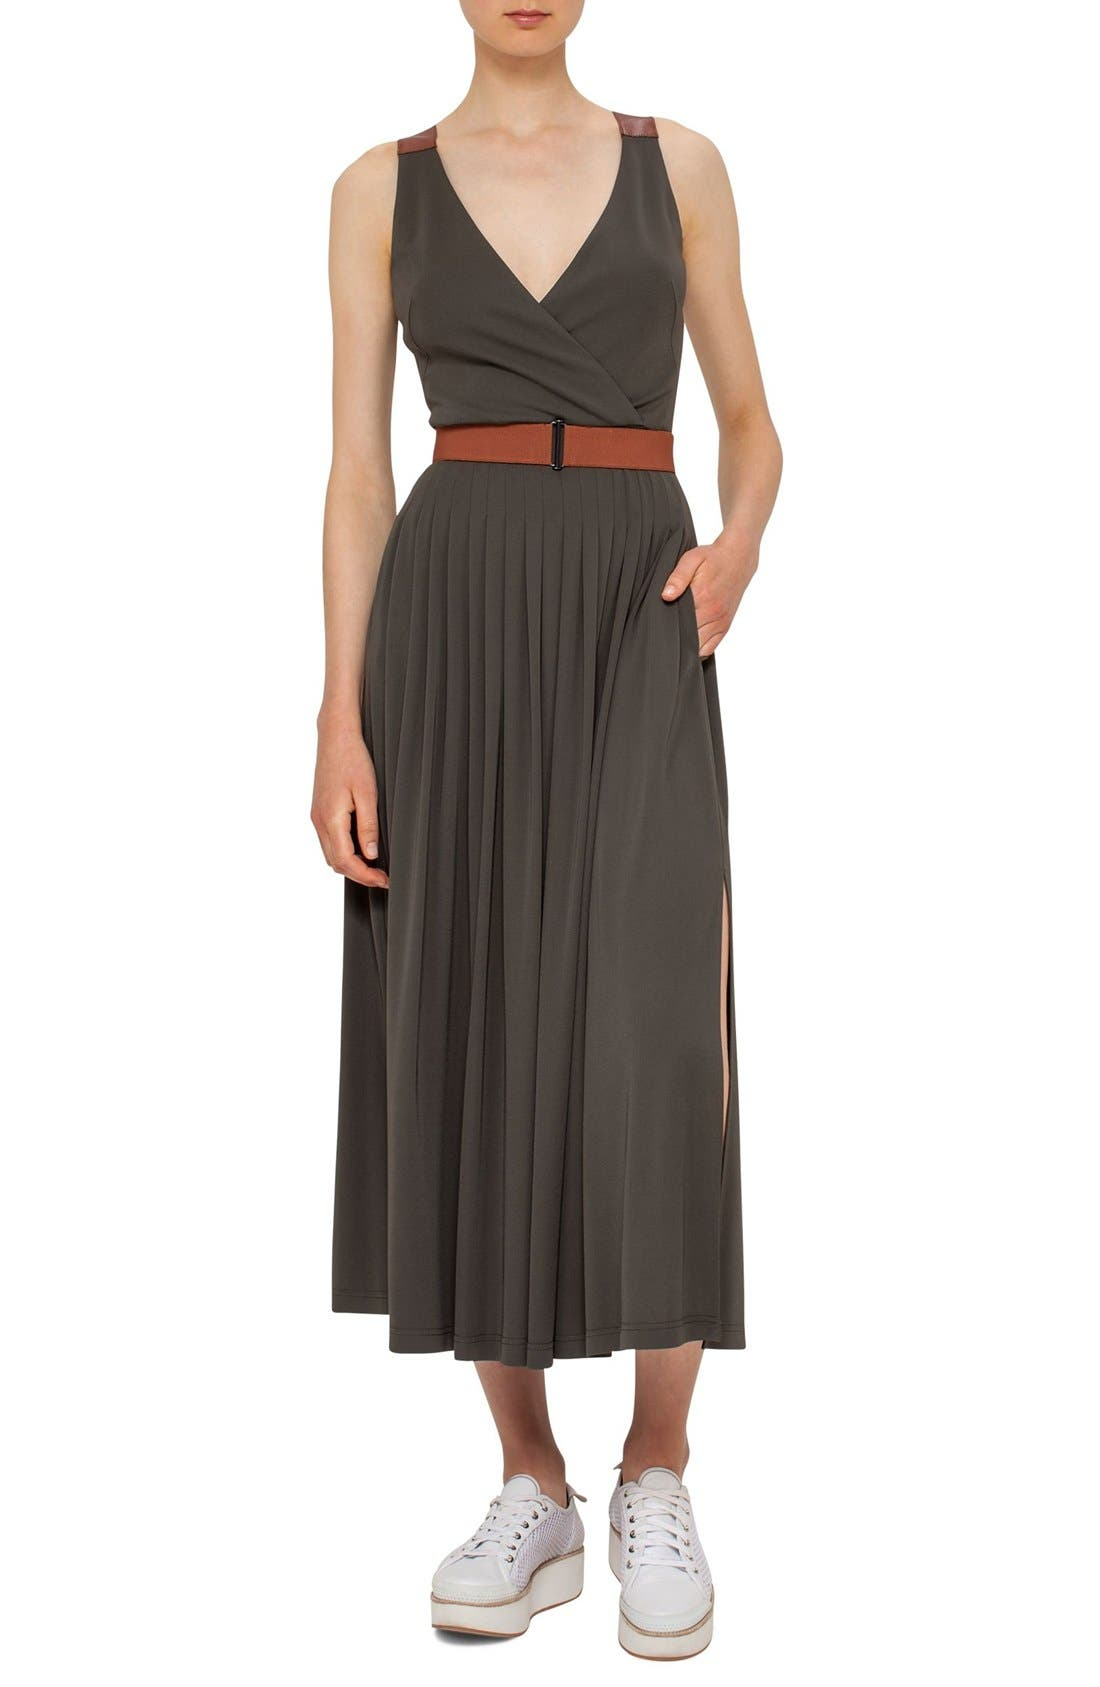 AKRIS PUNTO Leather Detail Midi Dress